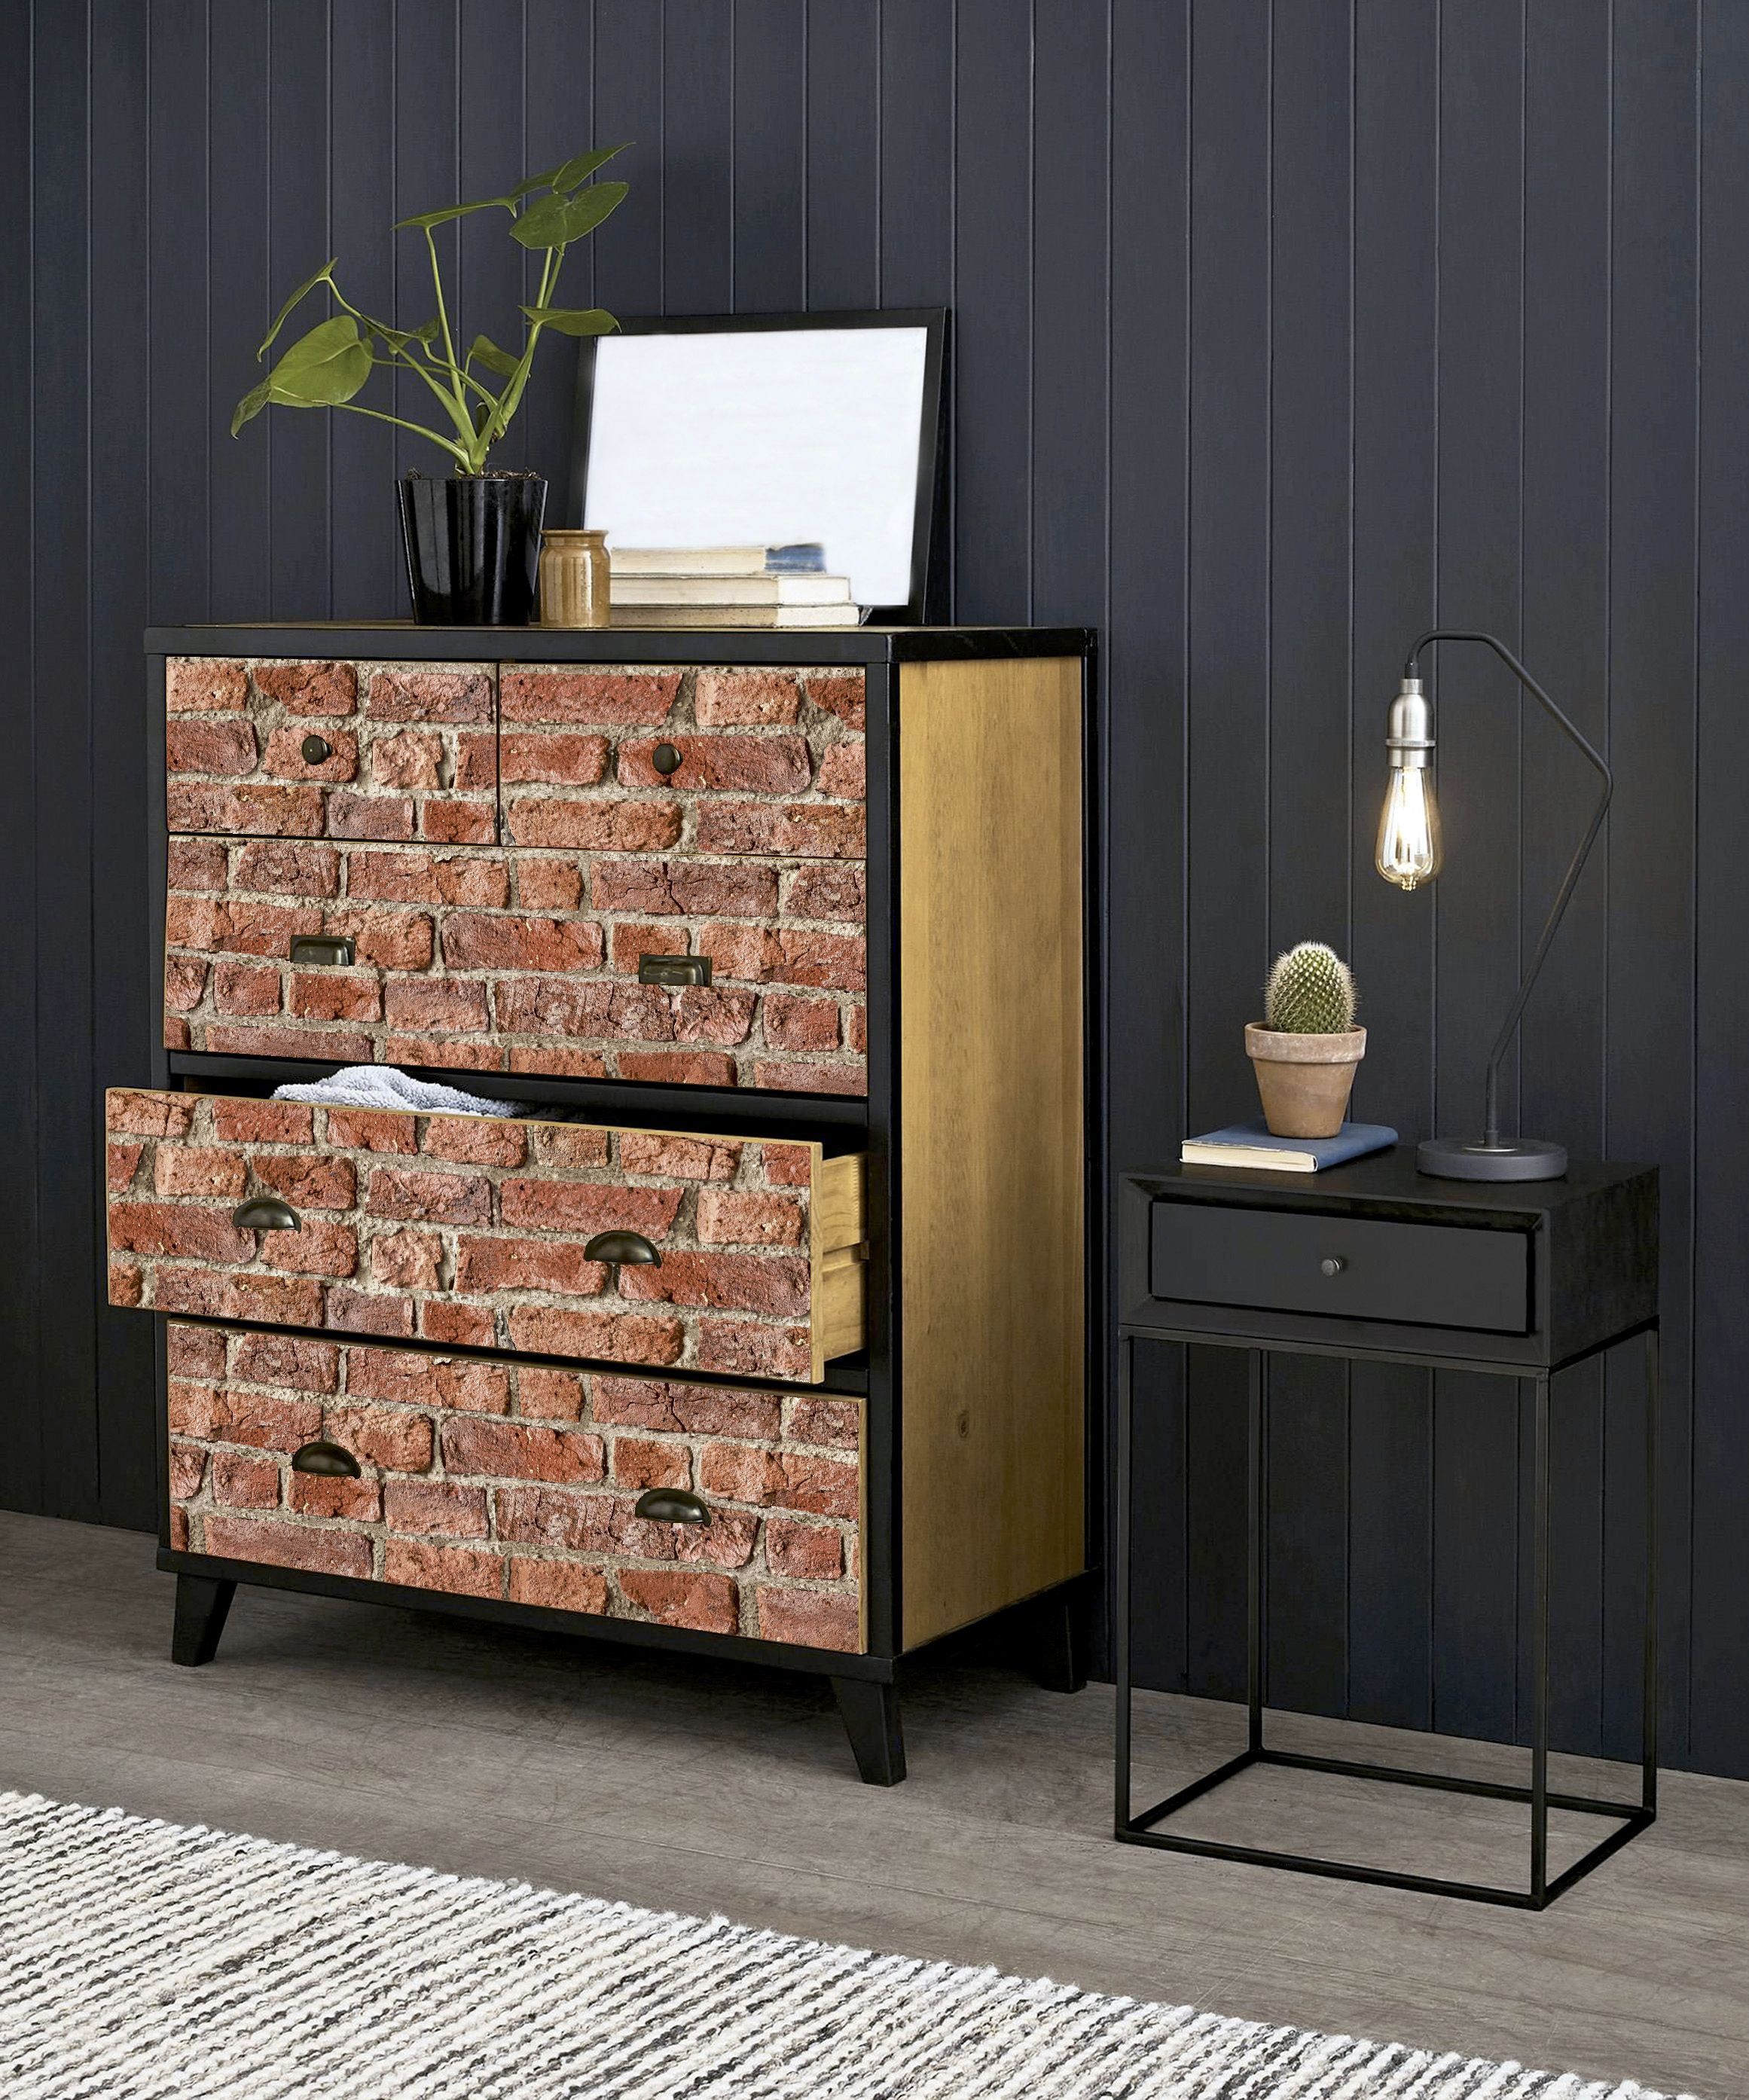 Artistick Urban Brick Red Peel And Stick Non Woven Wallpaper 300203 The Home Depot Brick Design Upcycled Furniture Brick Red